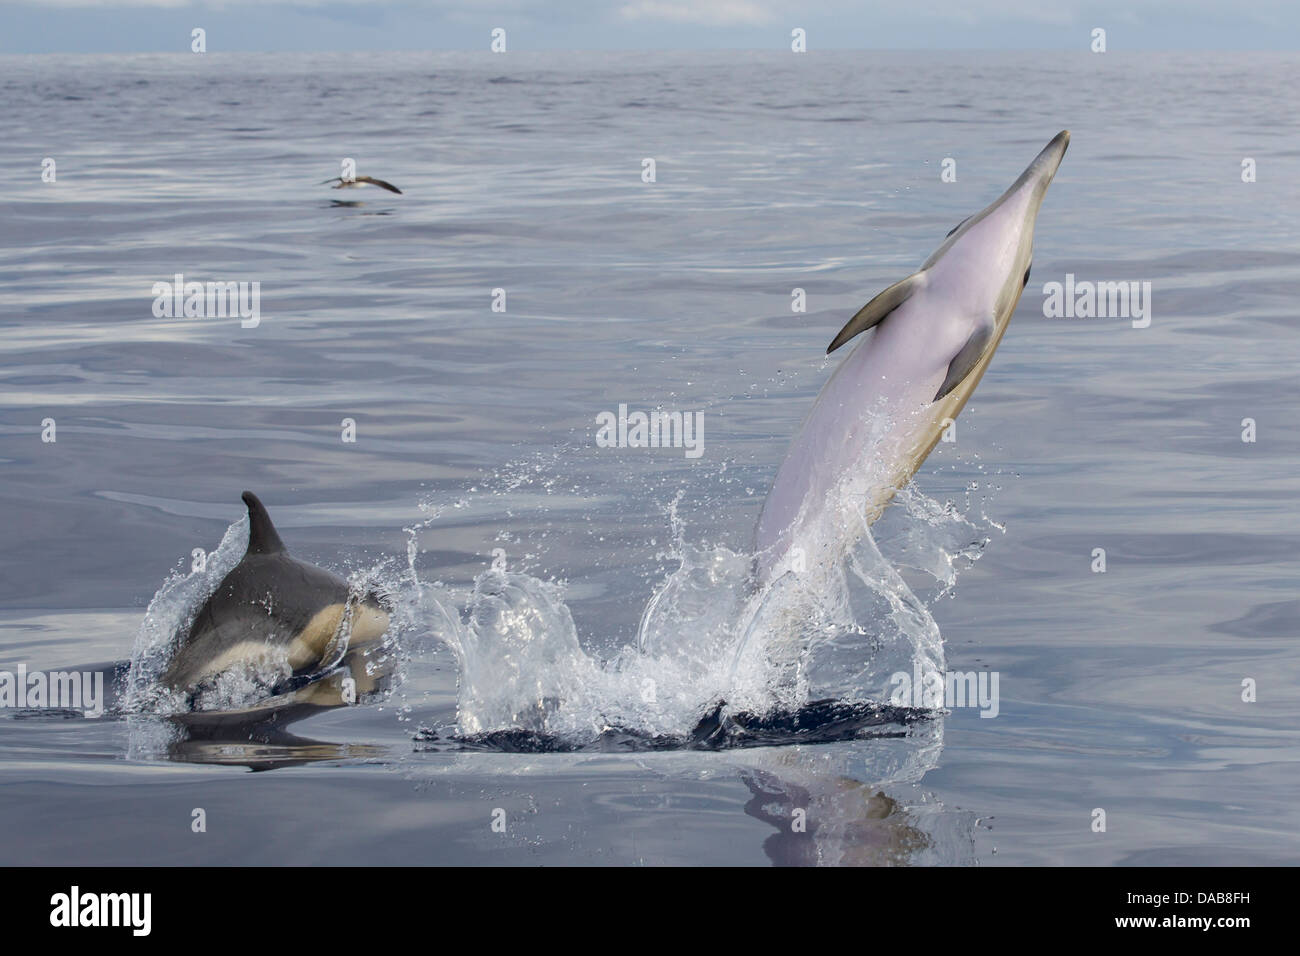 Gemeine Delphine, Short-beaked Common Dolphins, Delphinus delphis, leaping and playing together, Lajes do Pico, Stock Photo